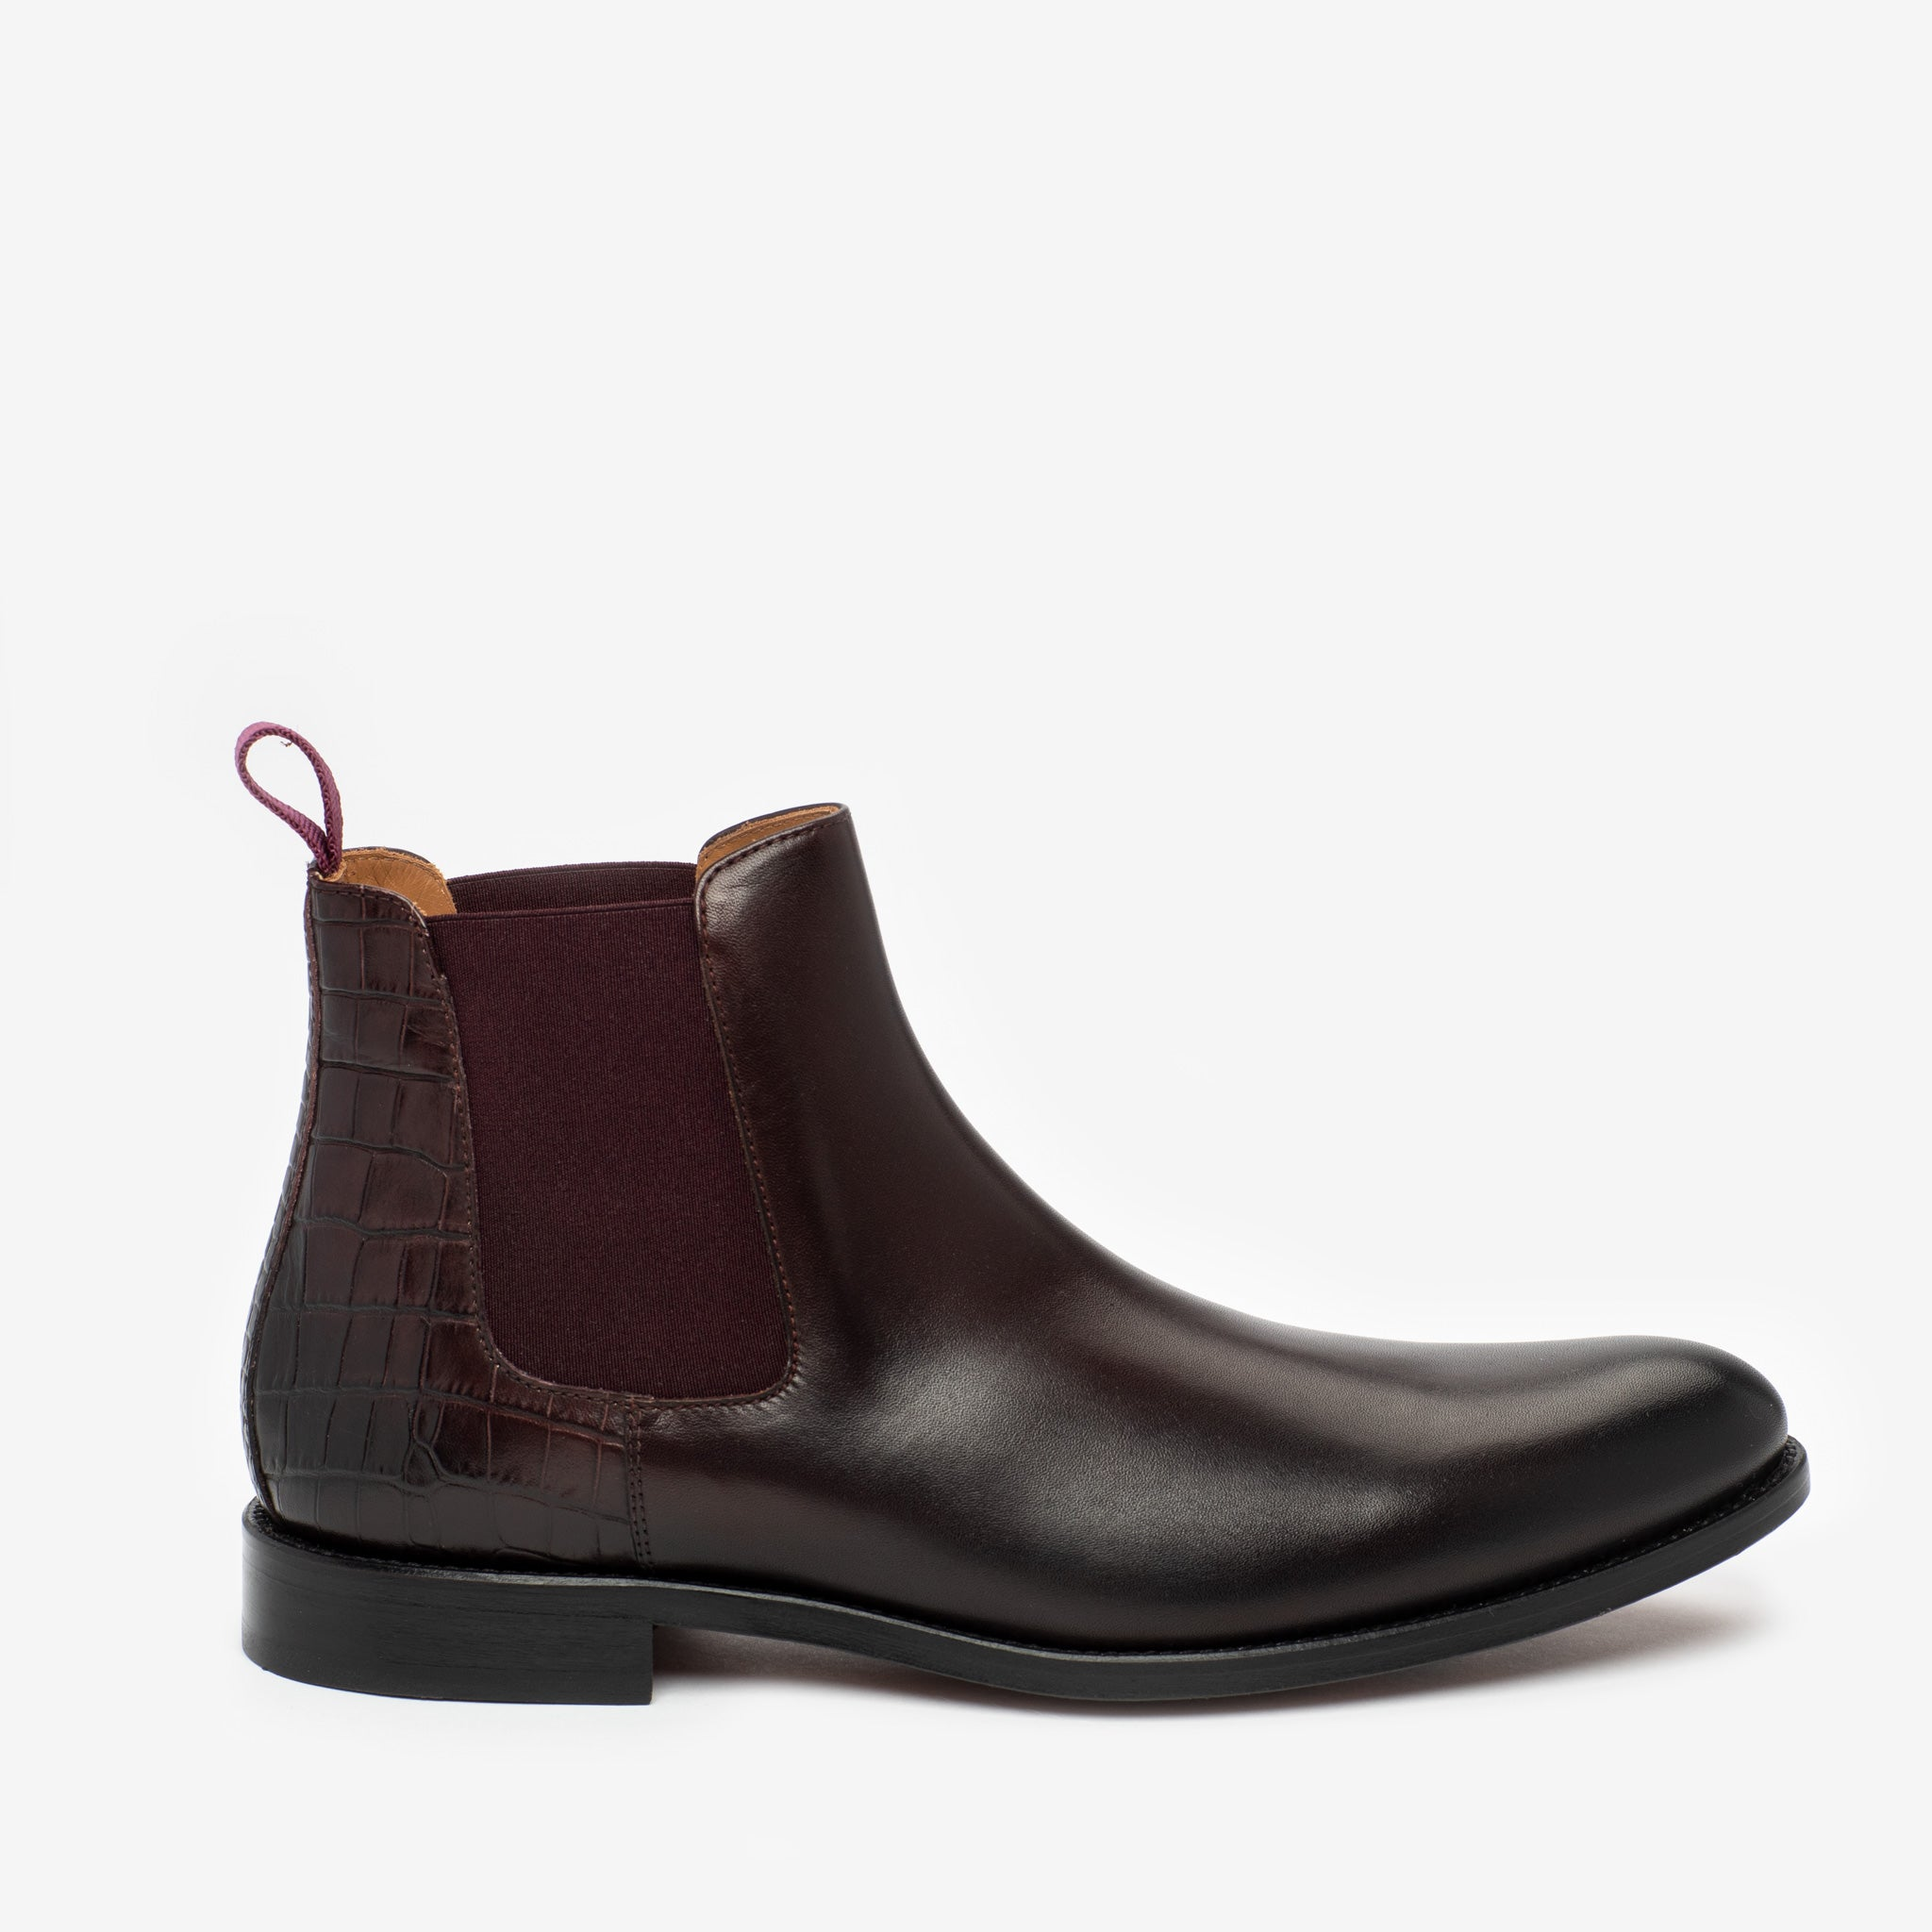 Hiro Boot in Oxblood side view